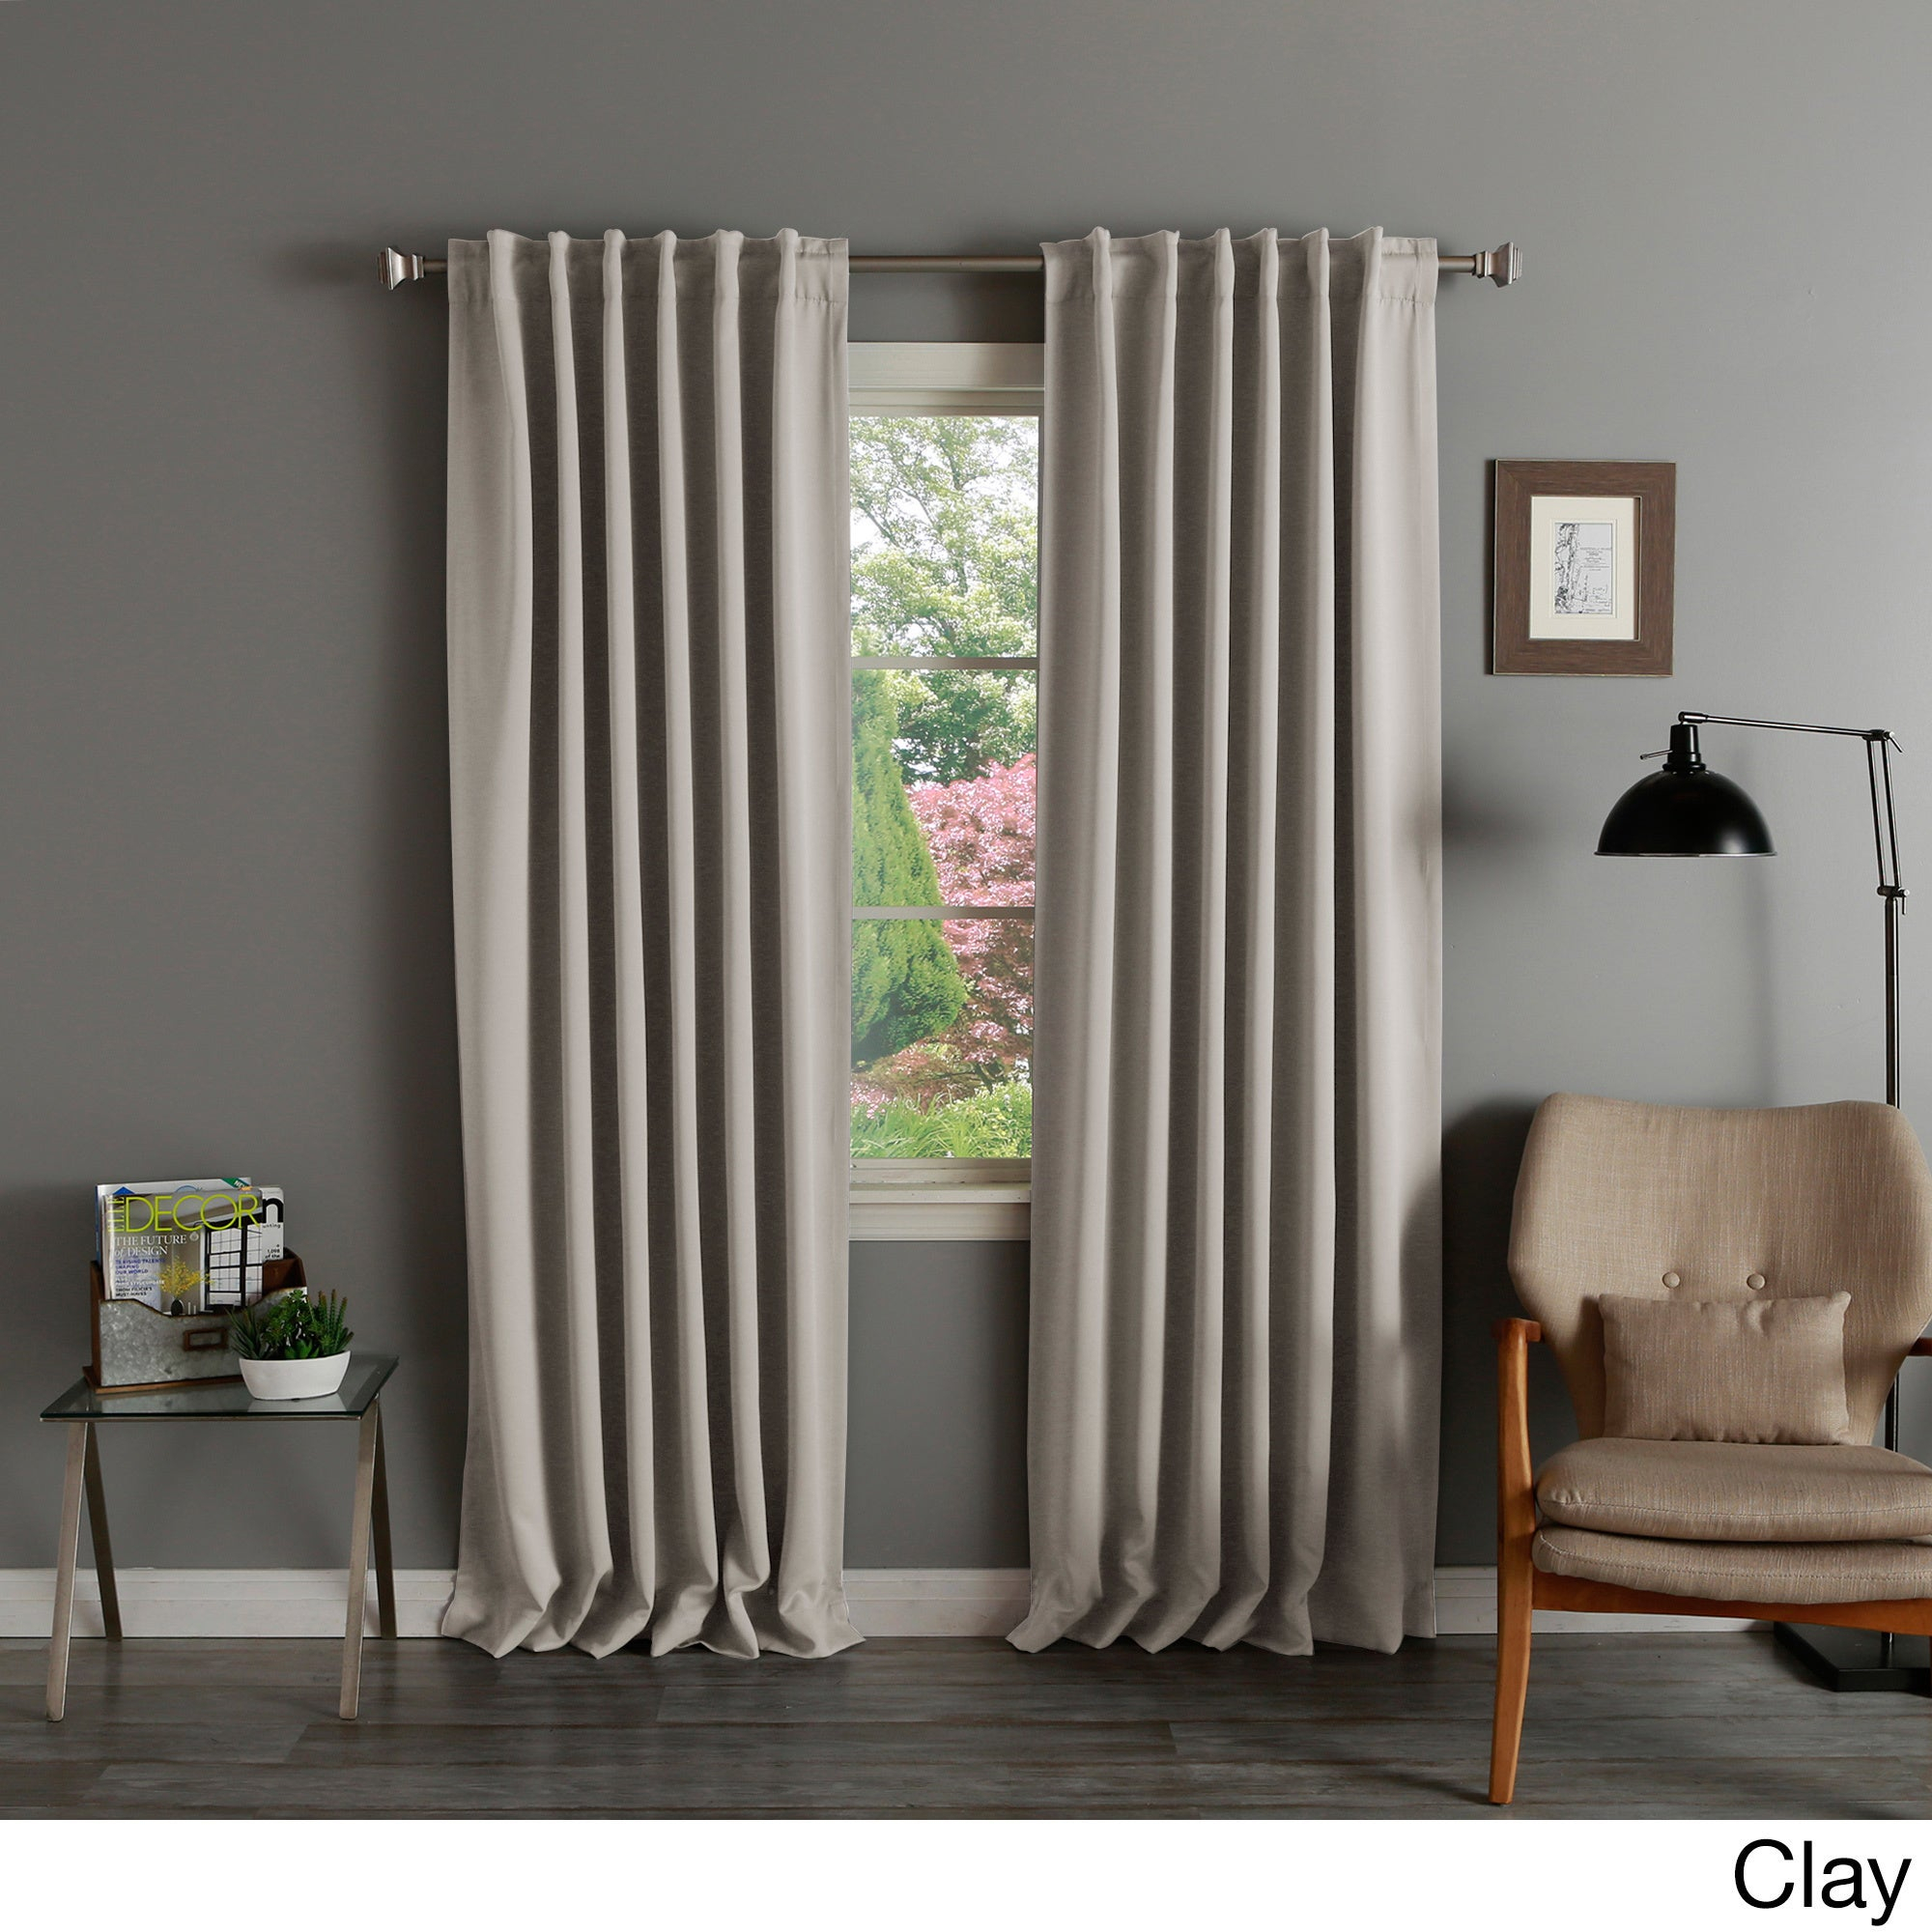 Solid Insulated Thermal Blackout Curtain Panel Pair Pertaining To Thermal Insulated Blackout Curtain Panel Pairs (View 2 of 30)